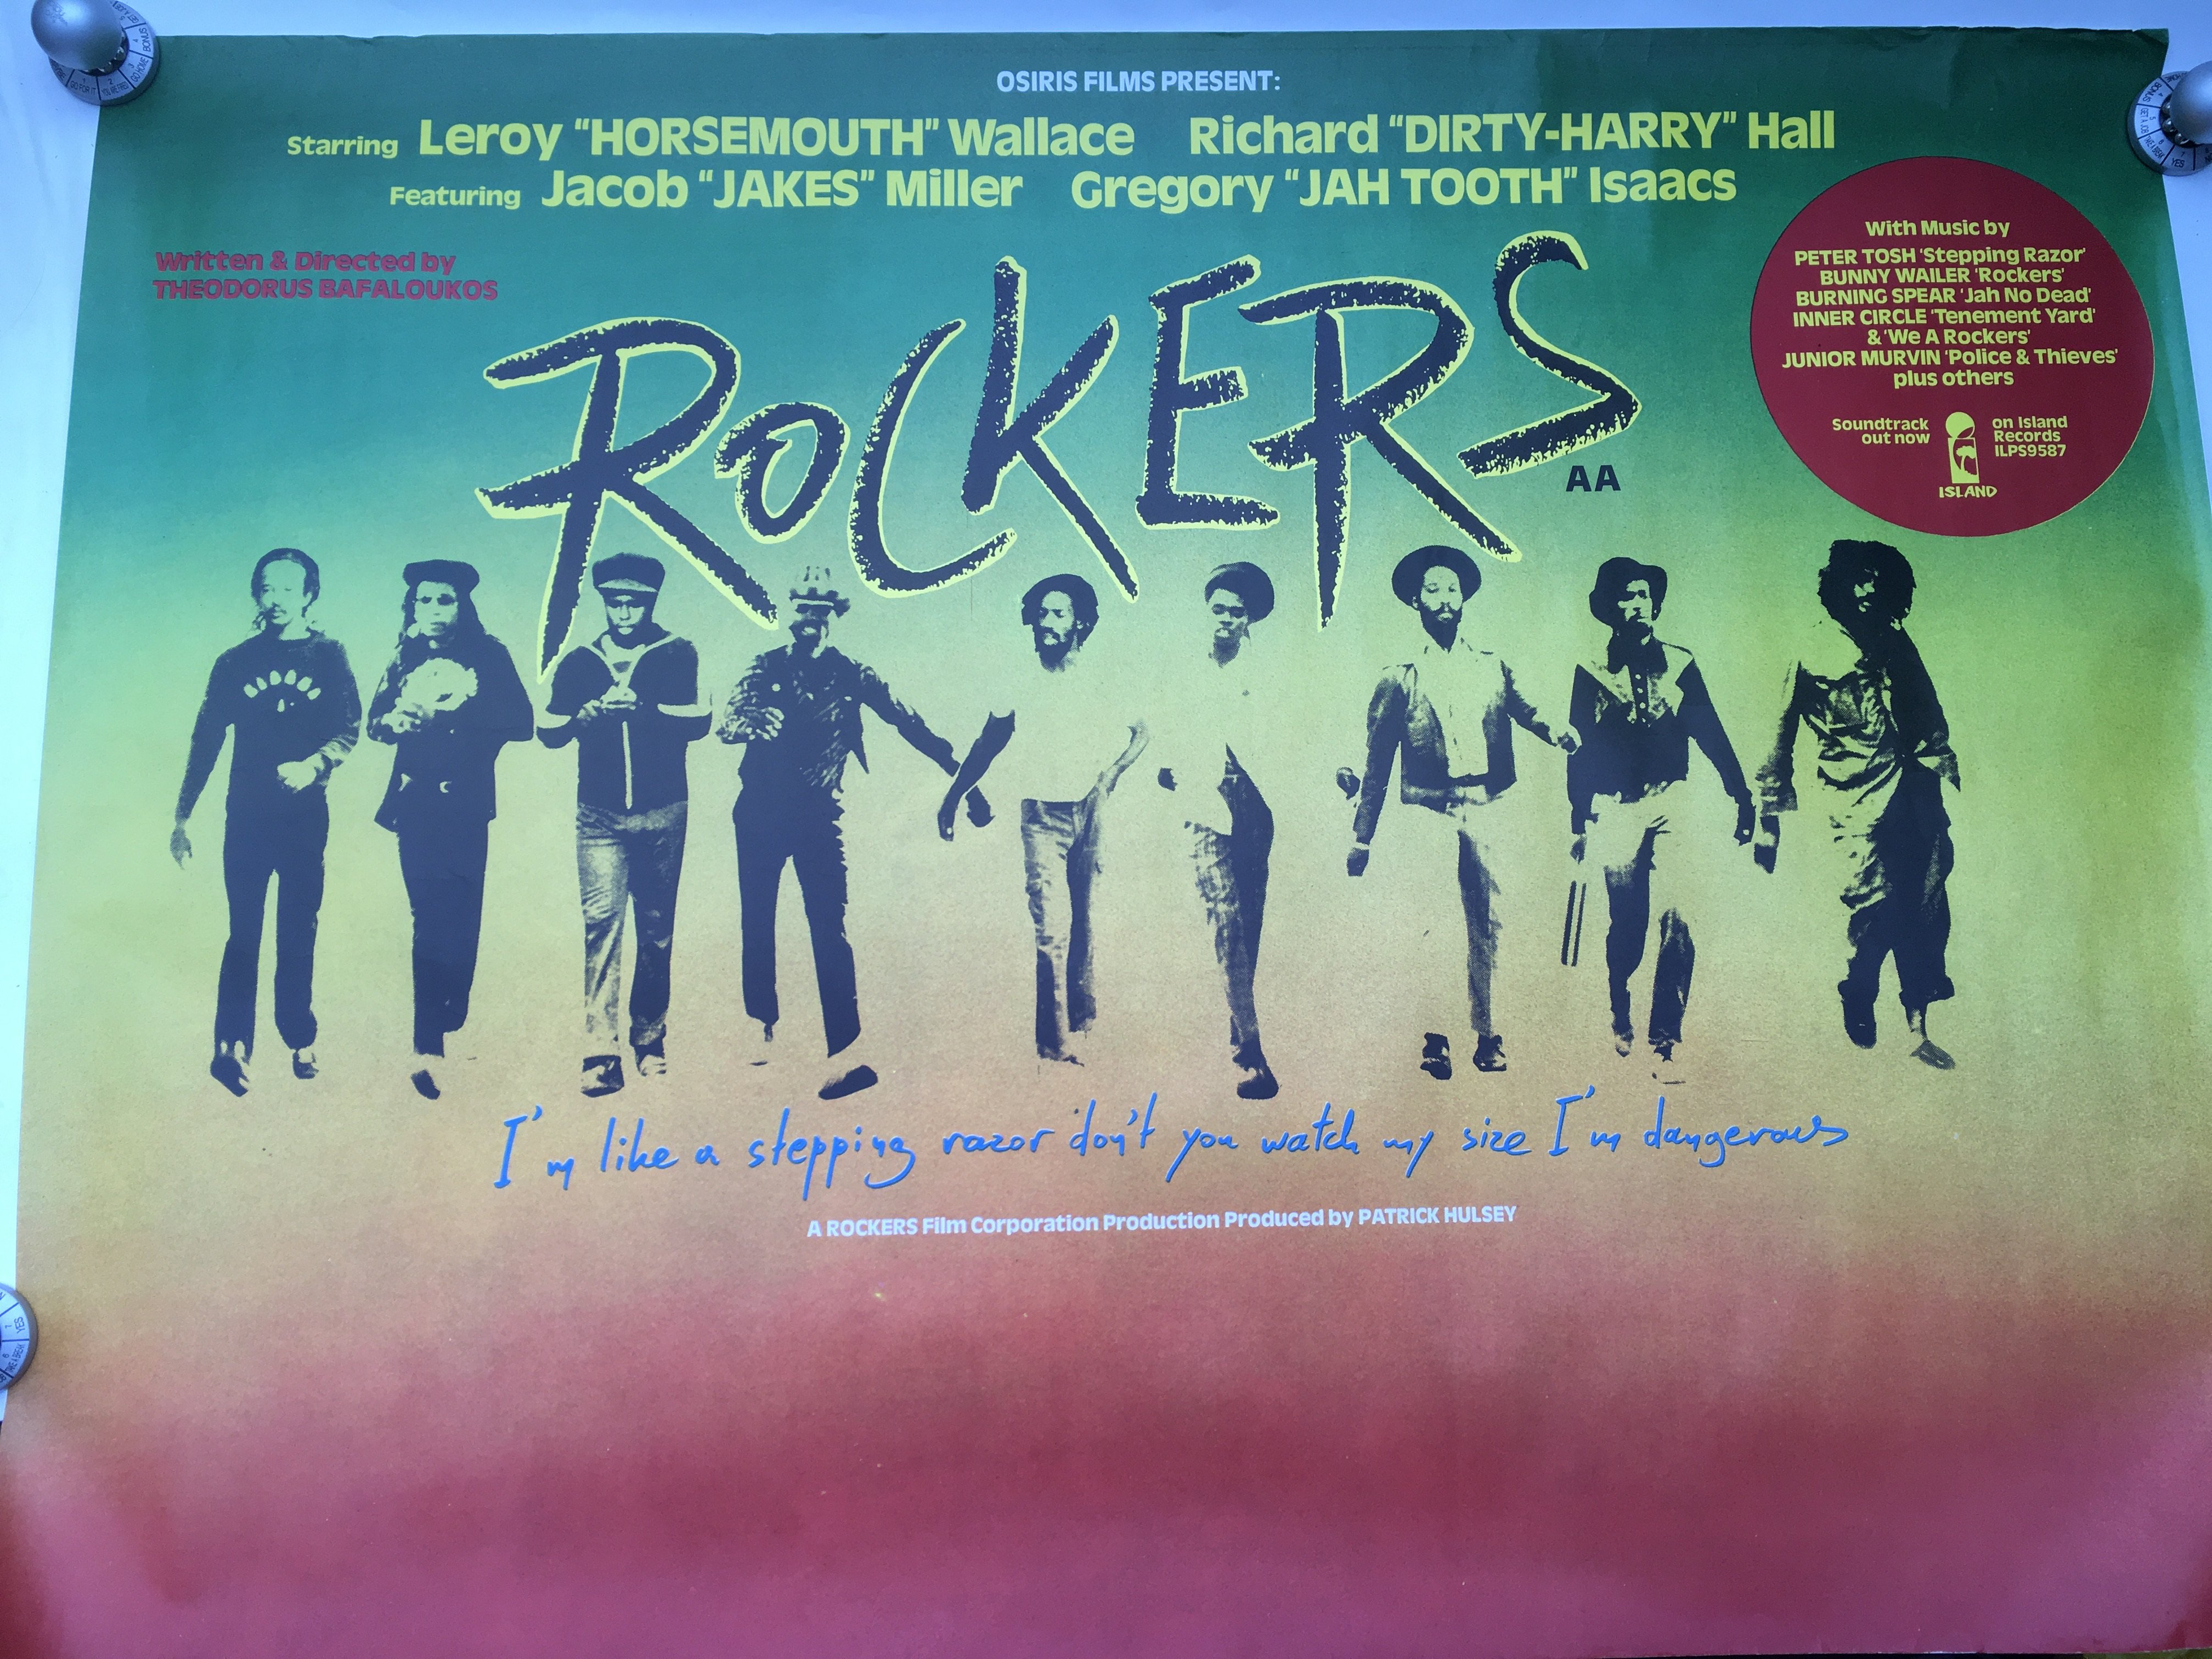 Two original reggae film posters, one for 'Country - Image 2 of 3